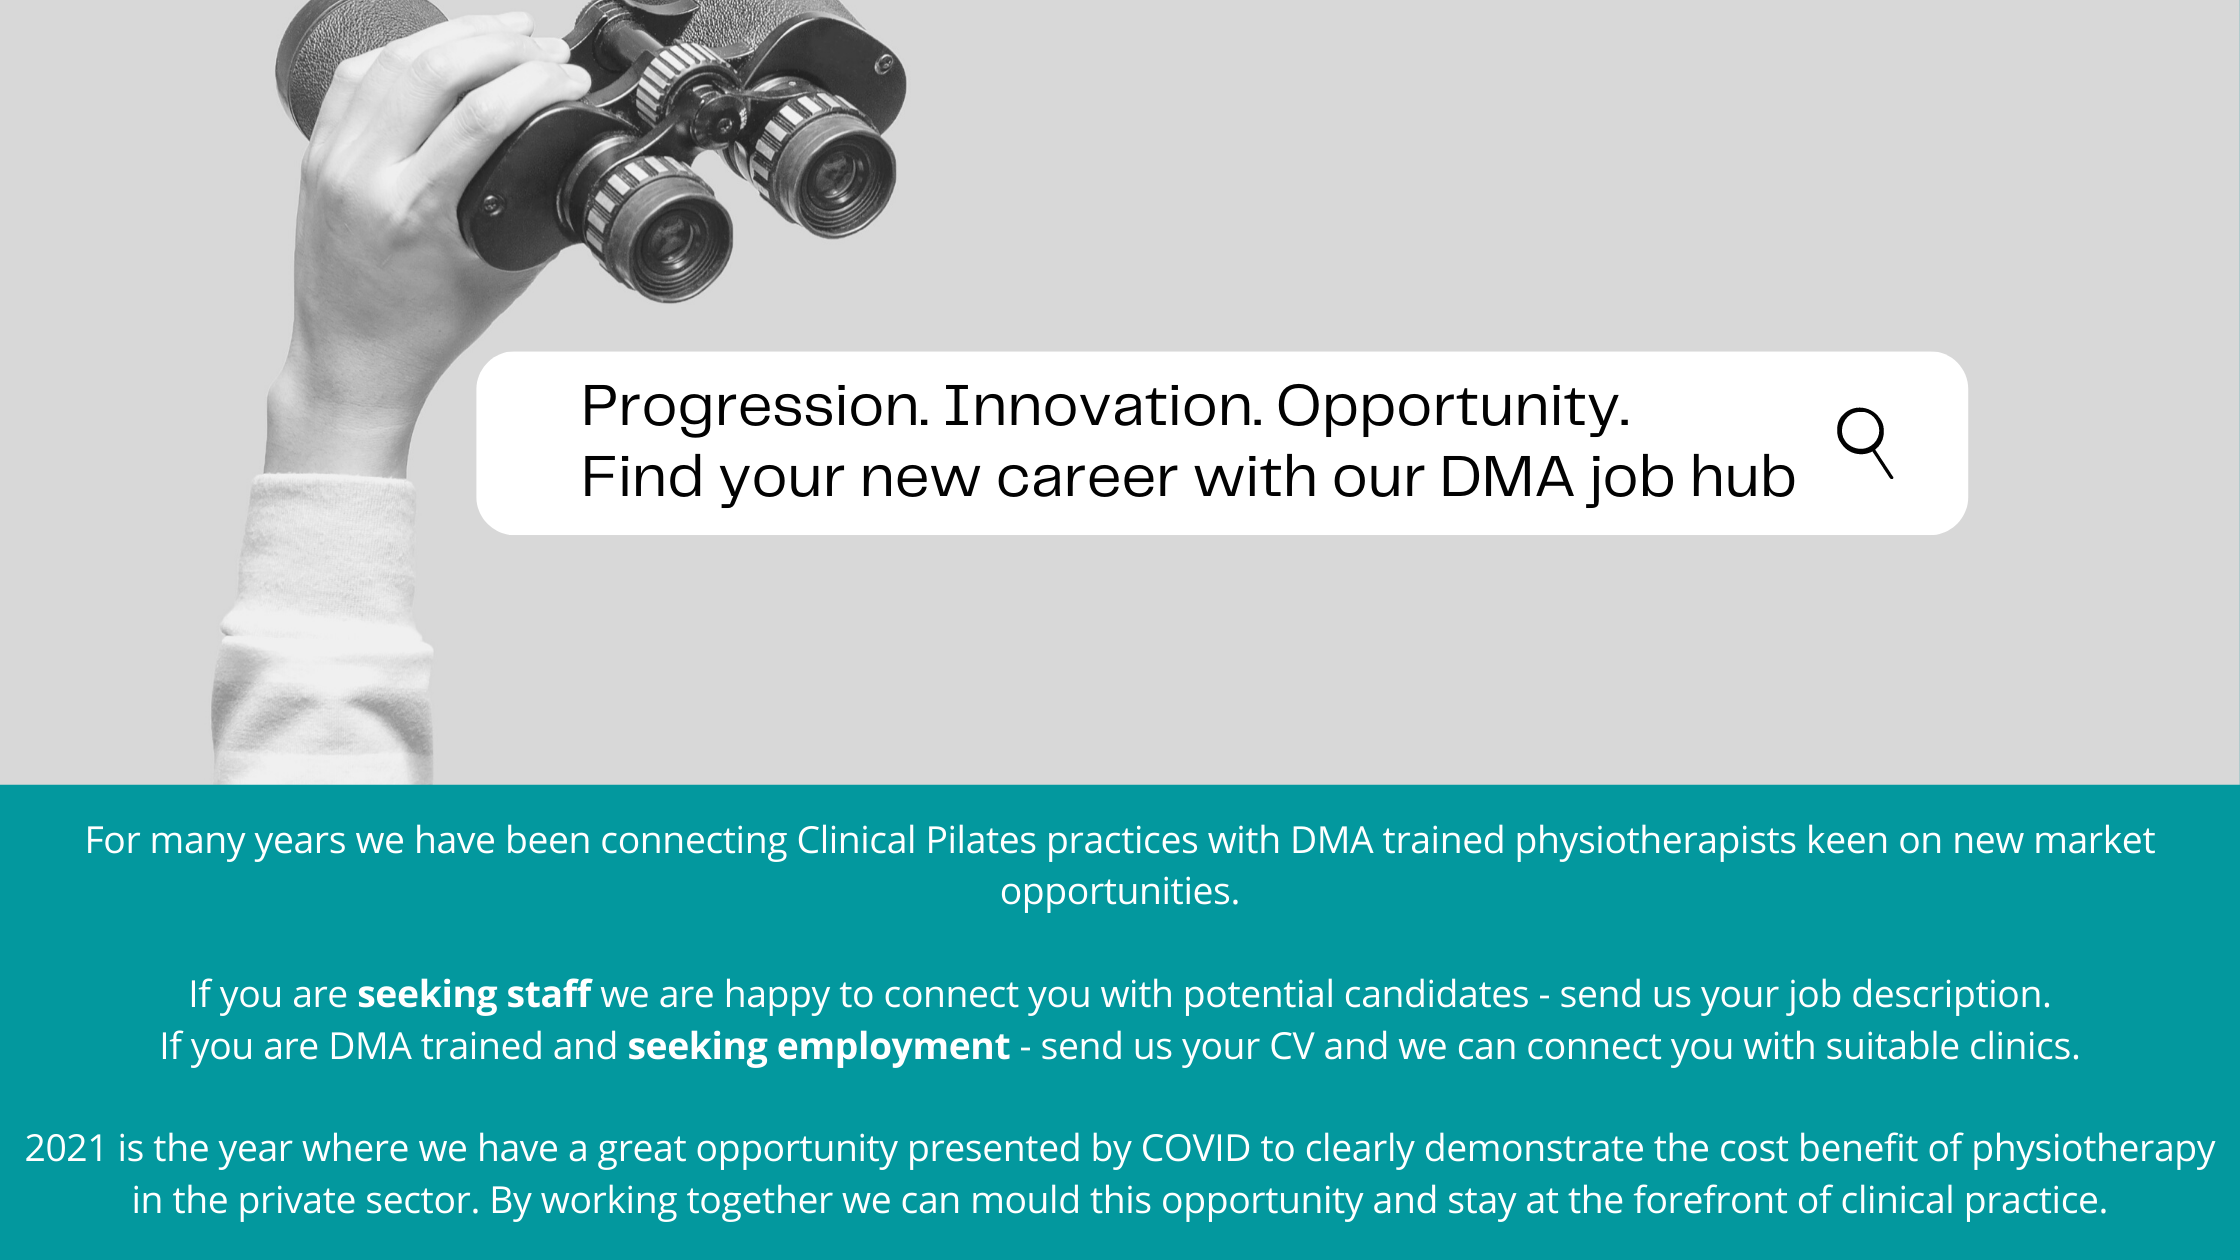 Search Physiotherapy Careers at DMA